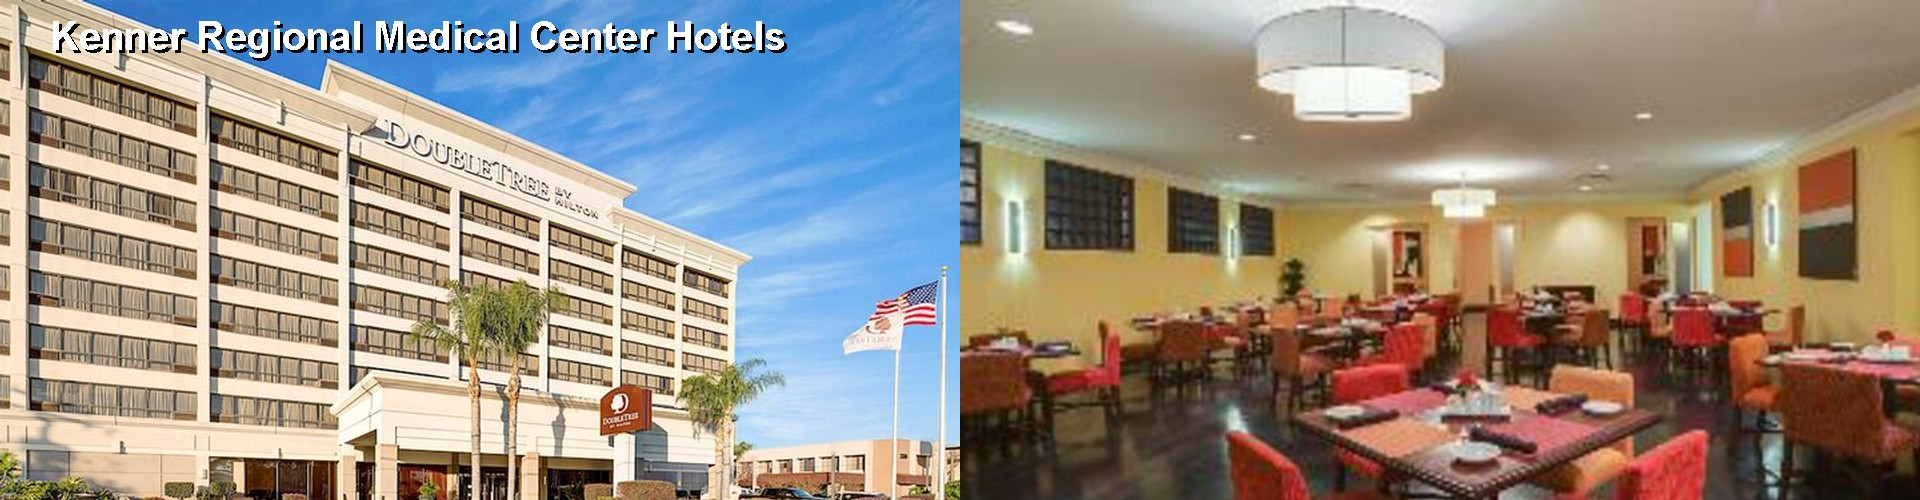 5 Best Hotels Near Kenner Regional Medical Center